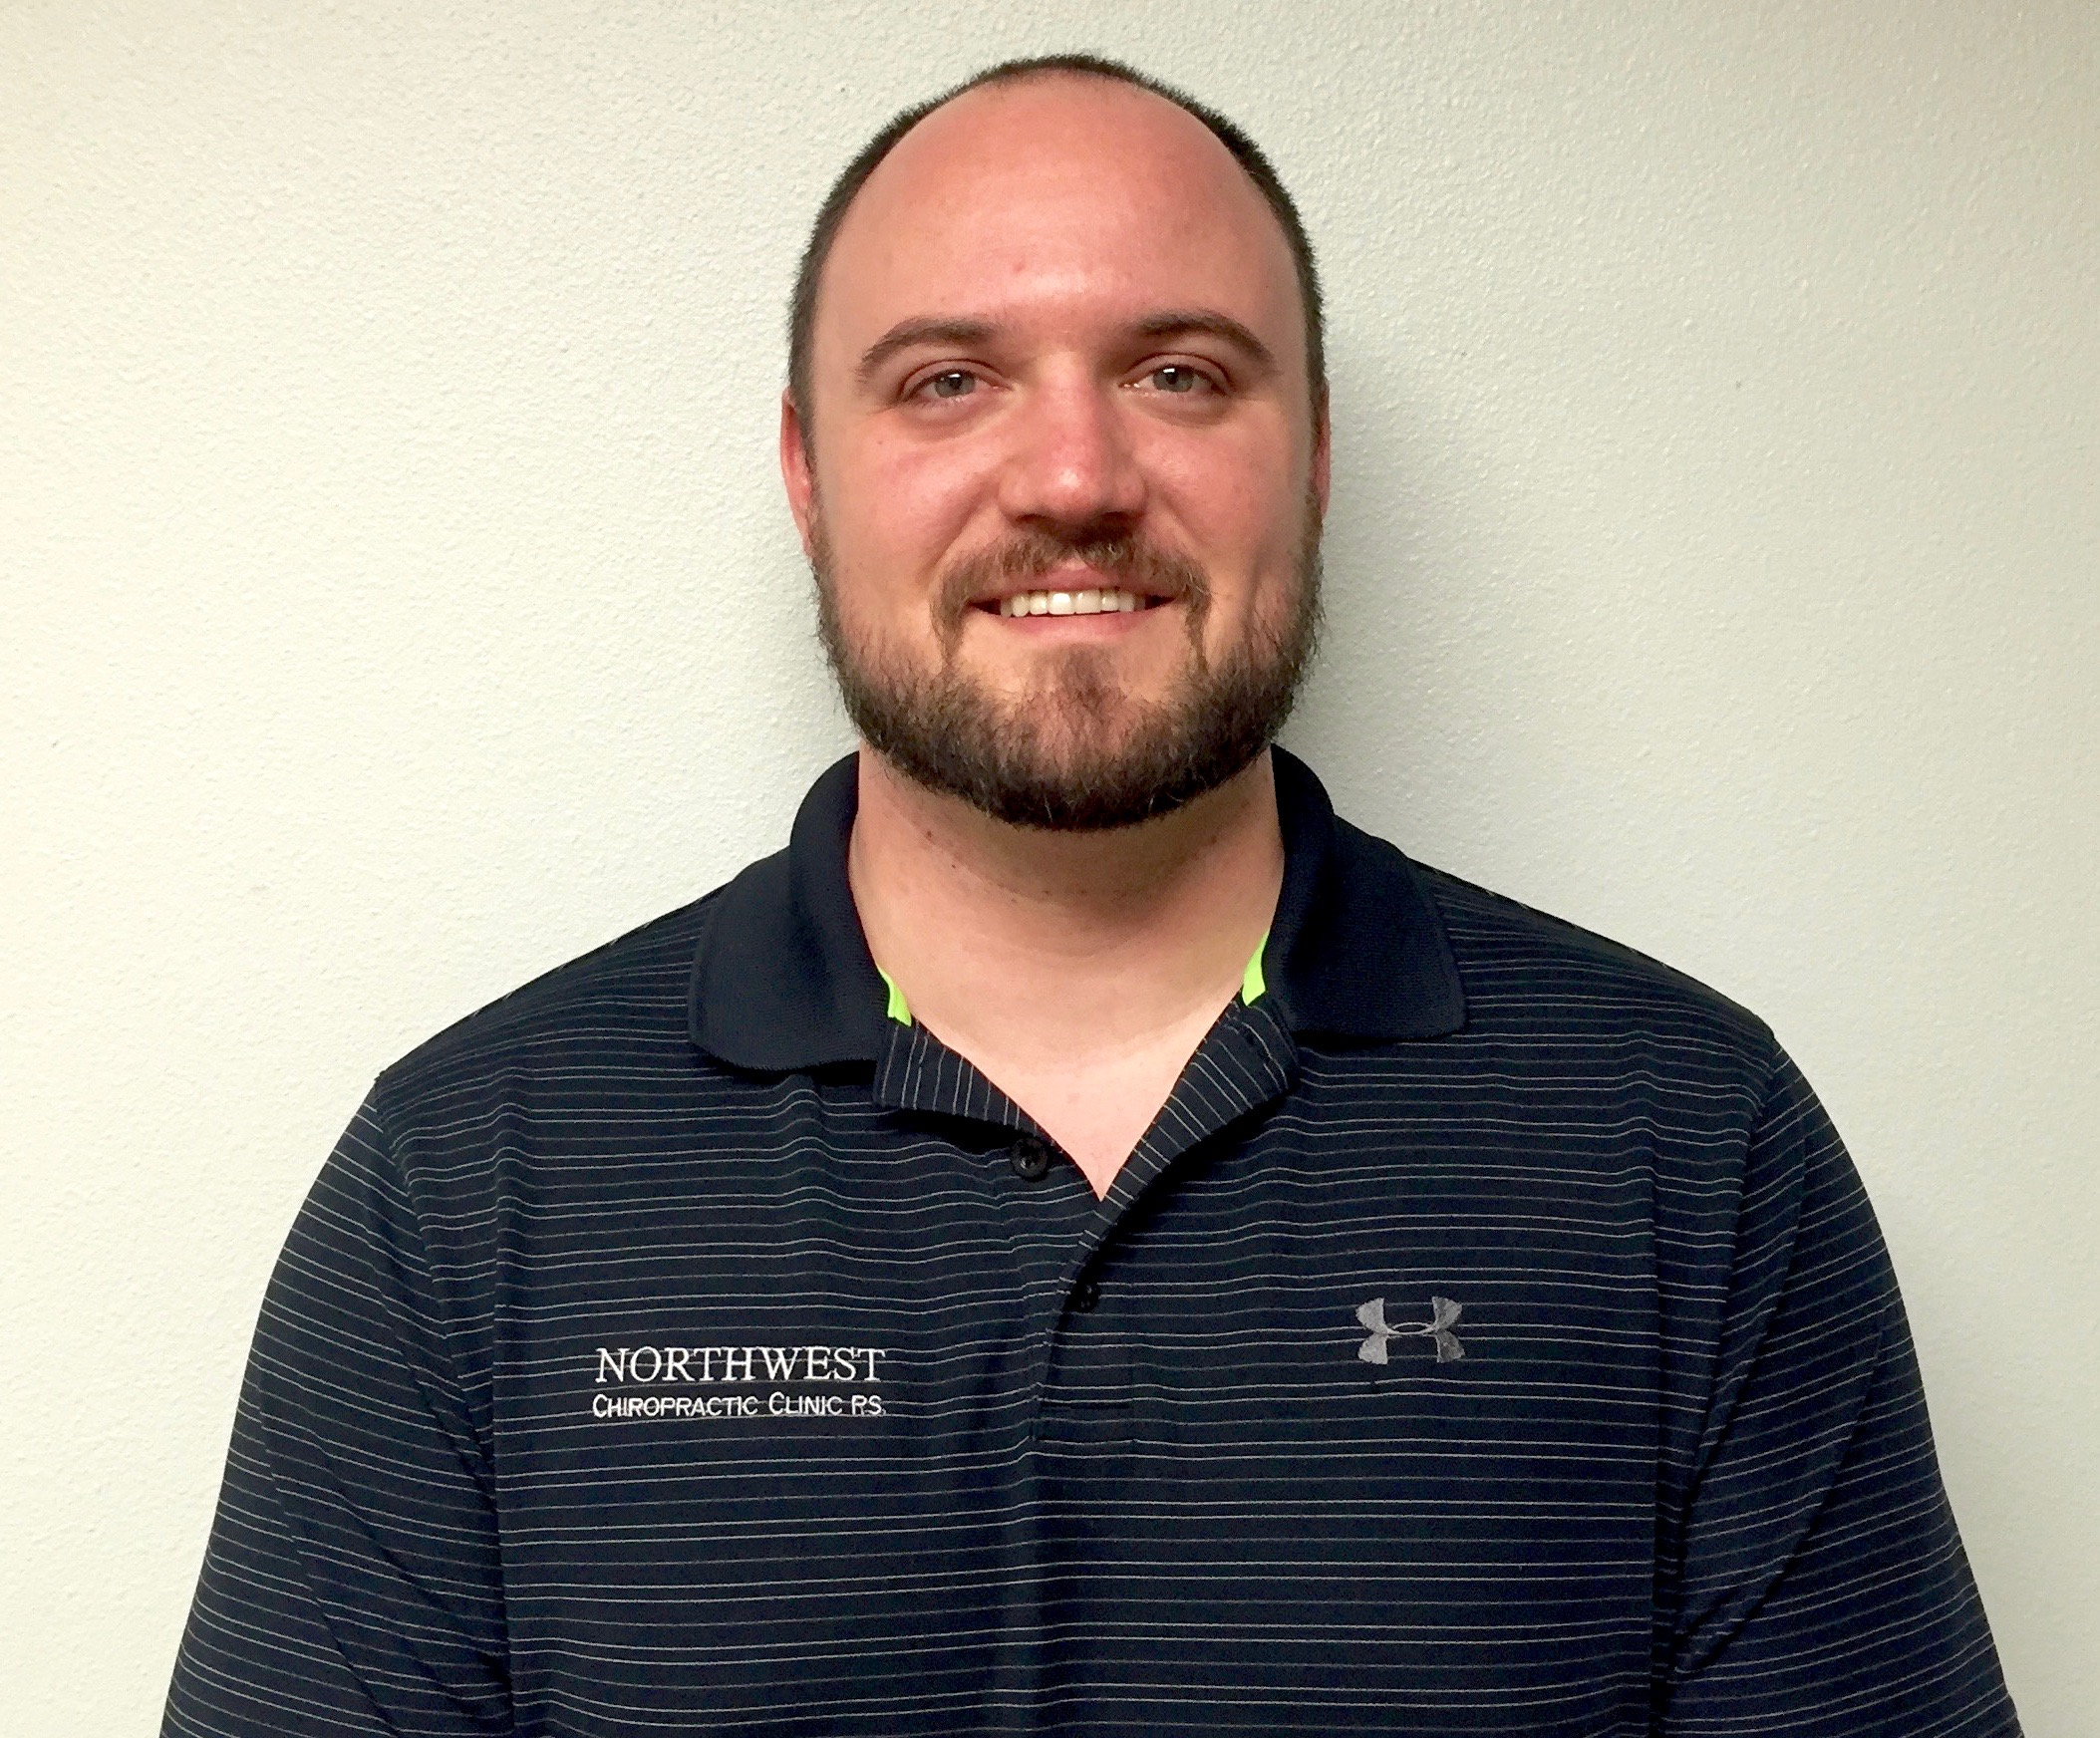 Dr. Brian Rindal - Northwest Chiropractic Clinic